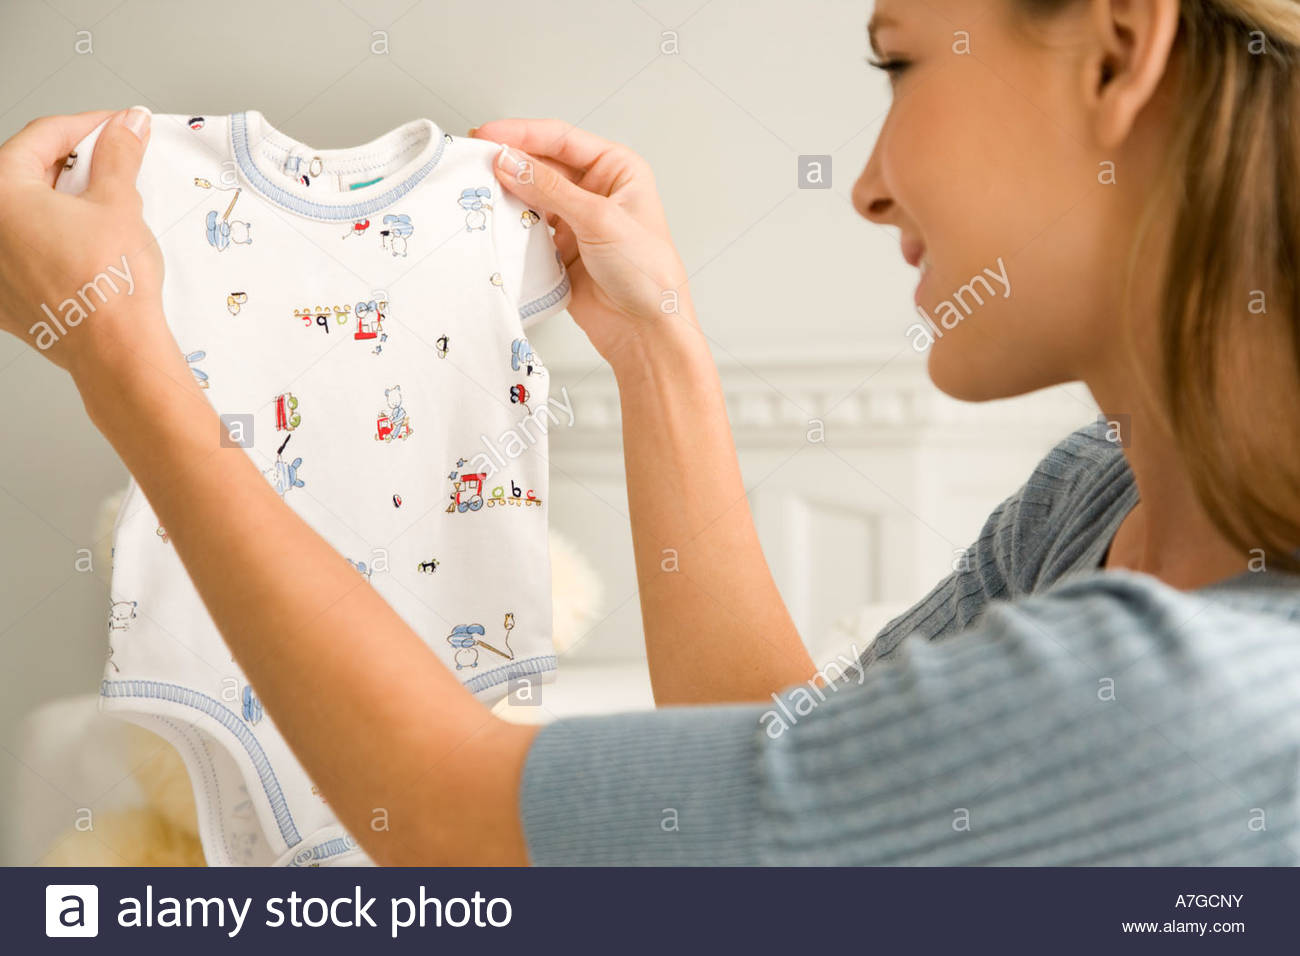 A mother holding a baby's vest - Stock Image